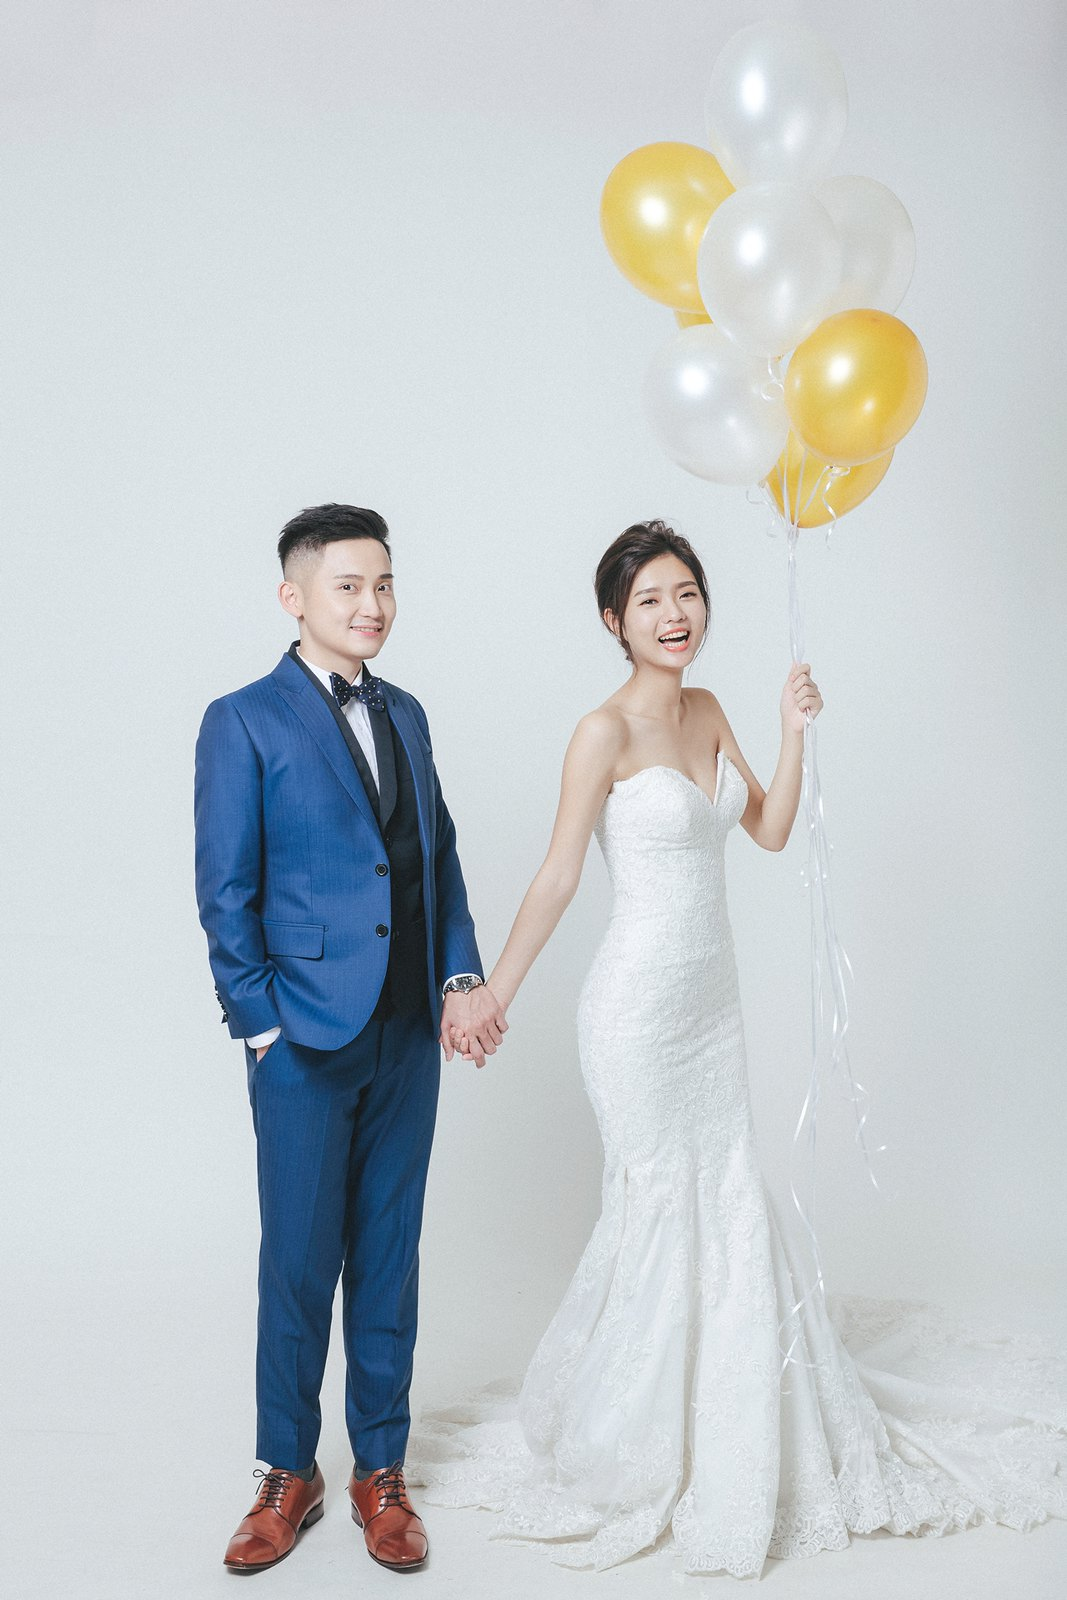 【婚紗】Will & Amy / 婚紗意象 / EASTERN WEDDING studio